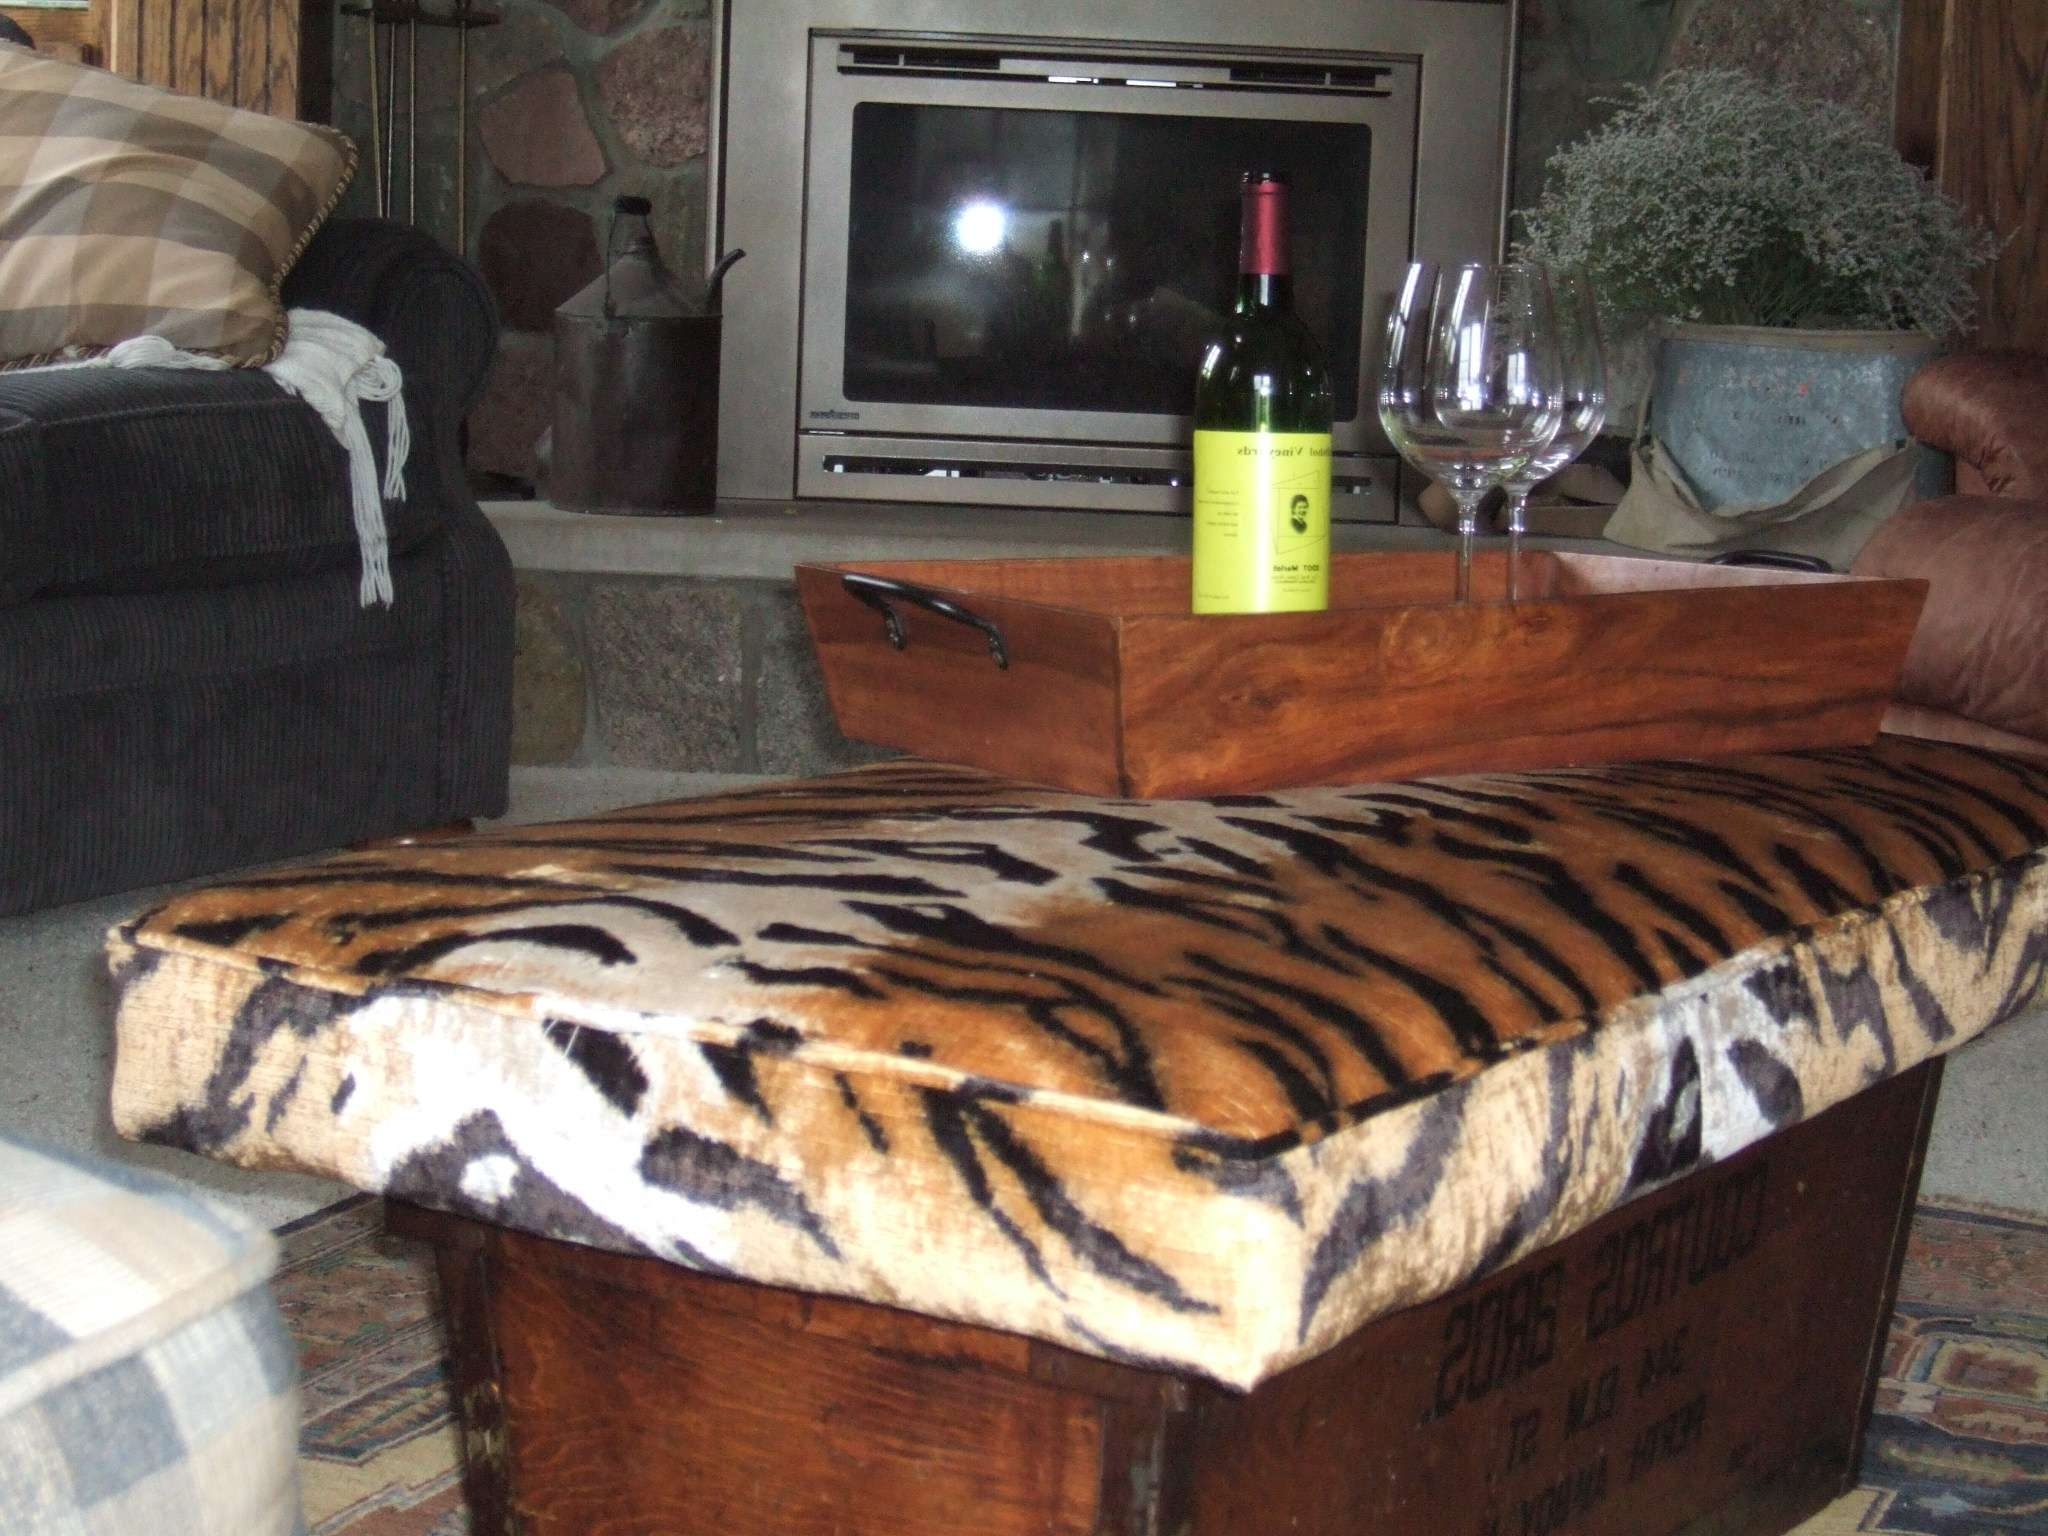 Upholstered Cushion Footstool Doubles As Coffee Table – Sew What With Regard To Current Animal Print Ottoman Coffee Tables (View 11 of 20)